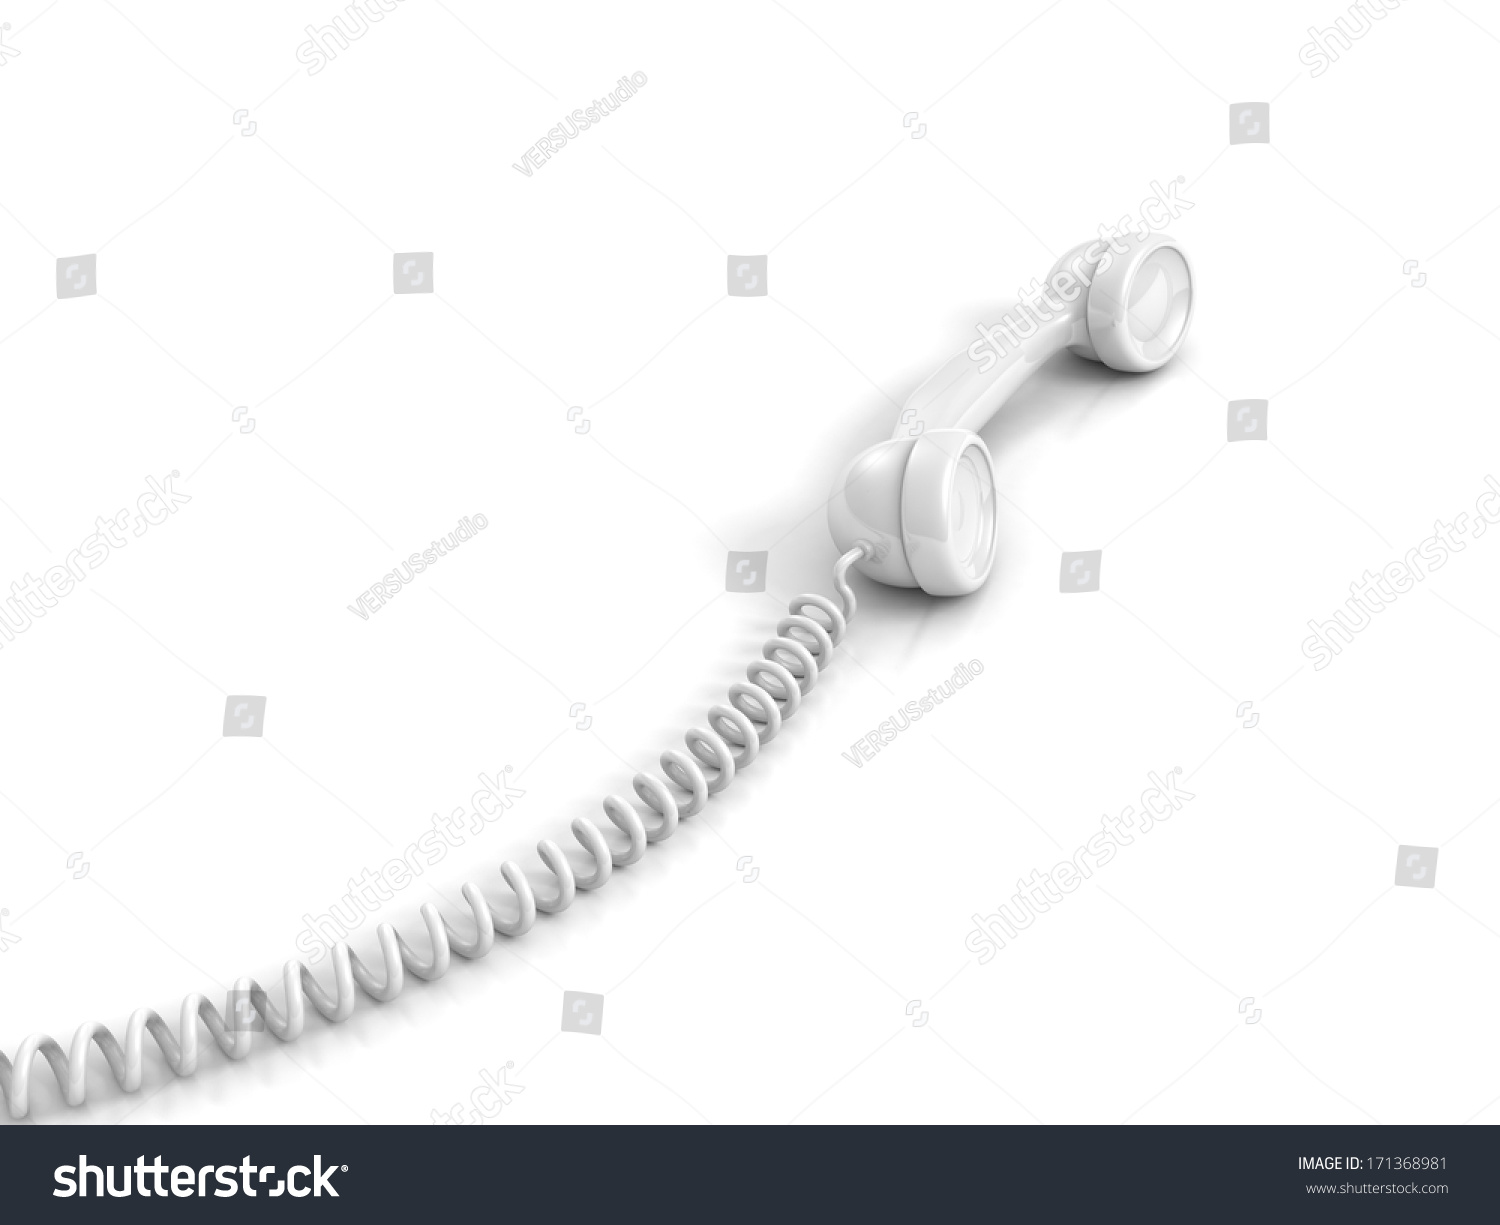 Stupendous White Telephone Handset Spiral Wire Cable Stock Illustration Wiring 101 Nizathateforg